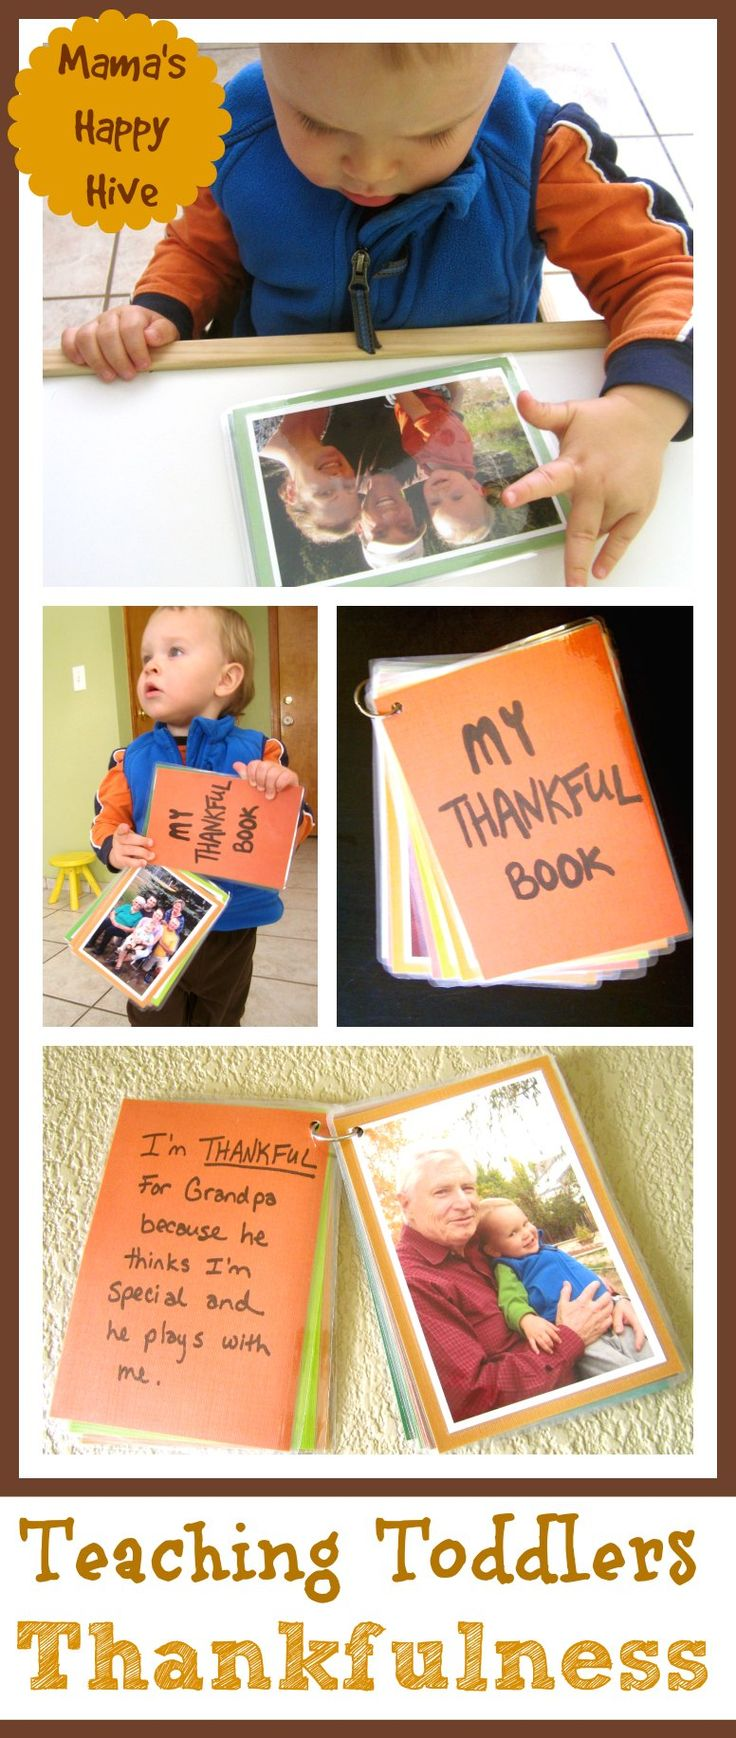 This endearing DIY Thankful Book is a tangible way for teaching toddlers thankfulness. It is laminated to be toddler proof for lots of hands-on playing. - www.mamashappyhive.com